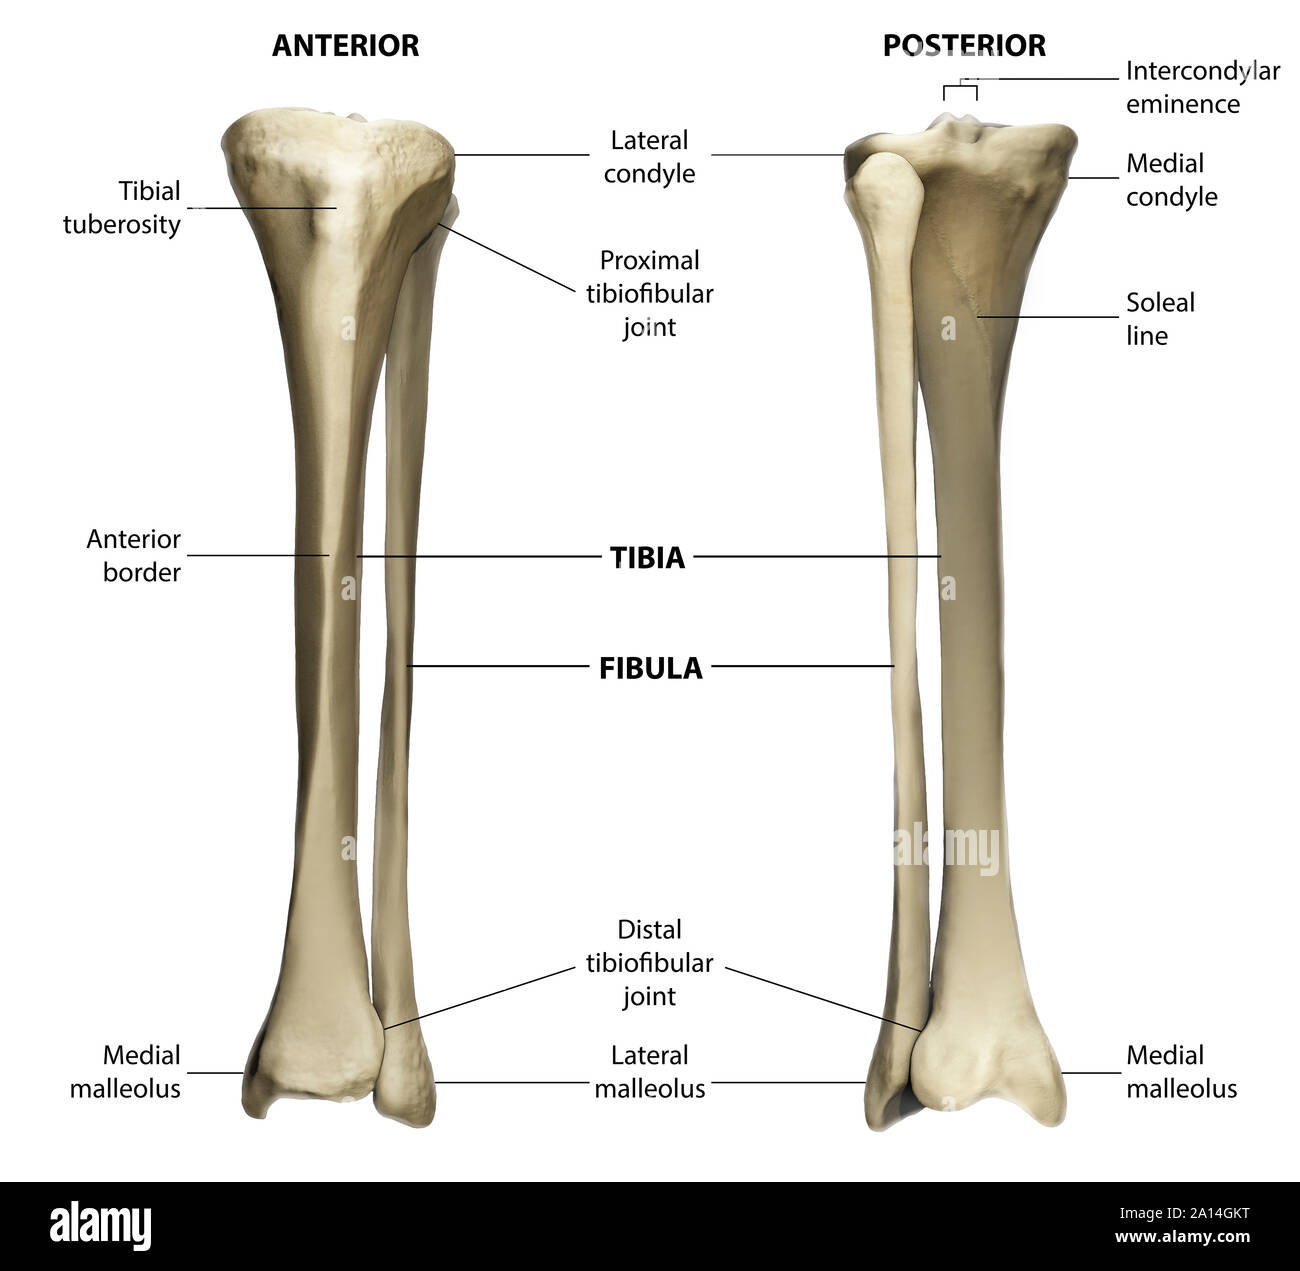 Anterior and posterior view of the tibia and fibula with ...